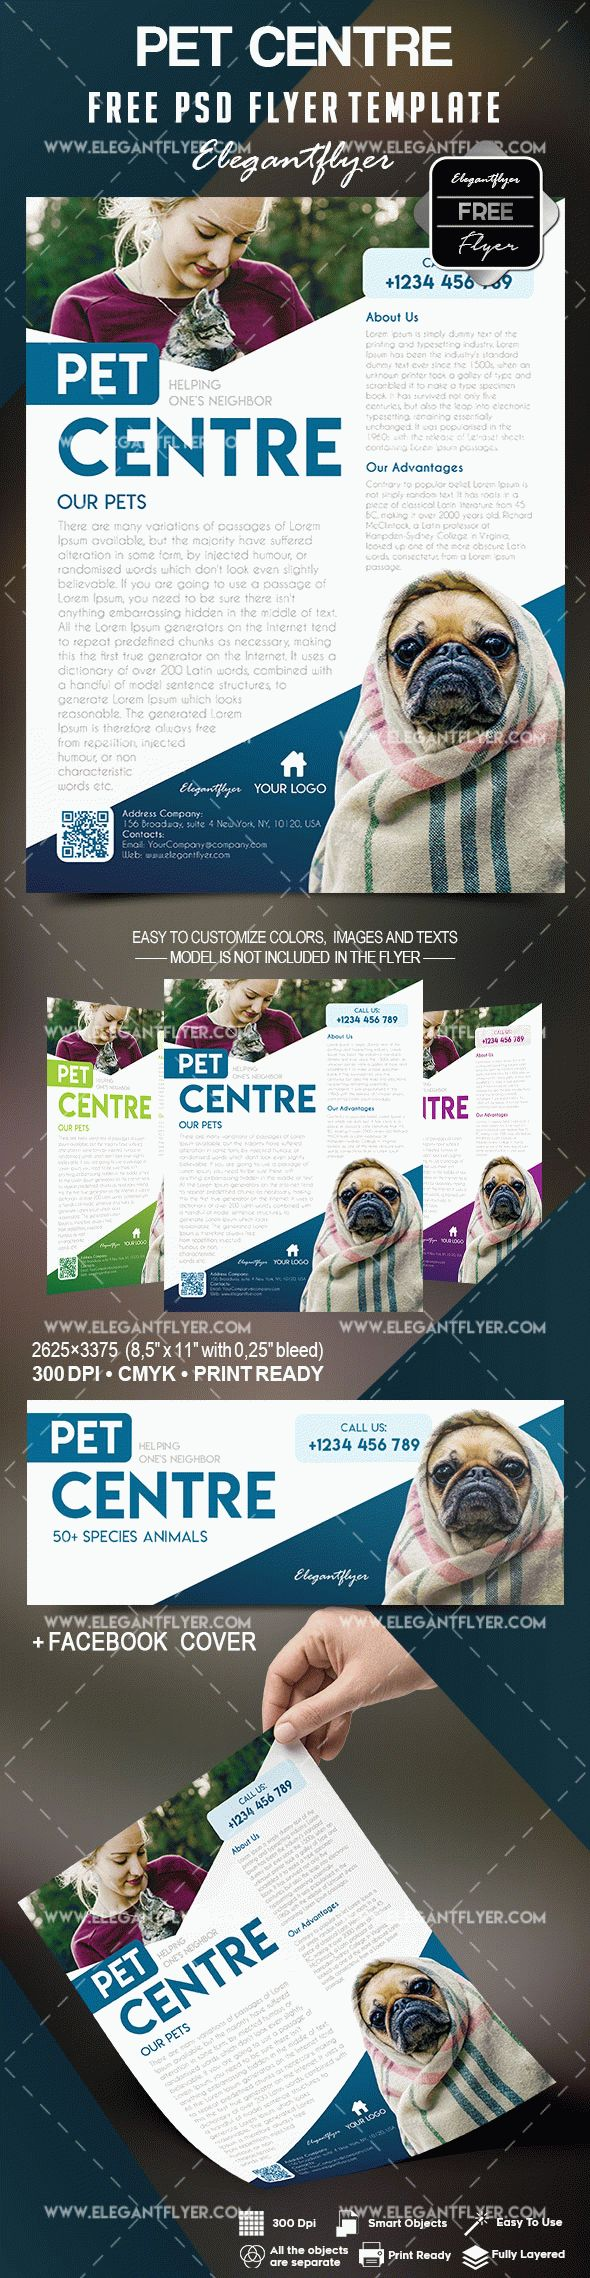 Free Pet Centre Flyer Template